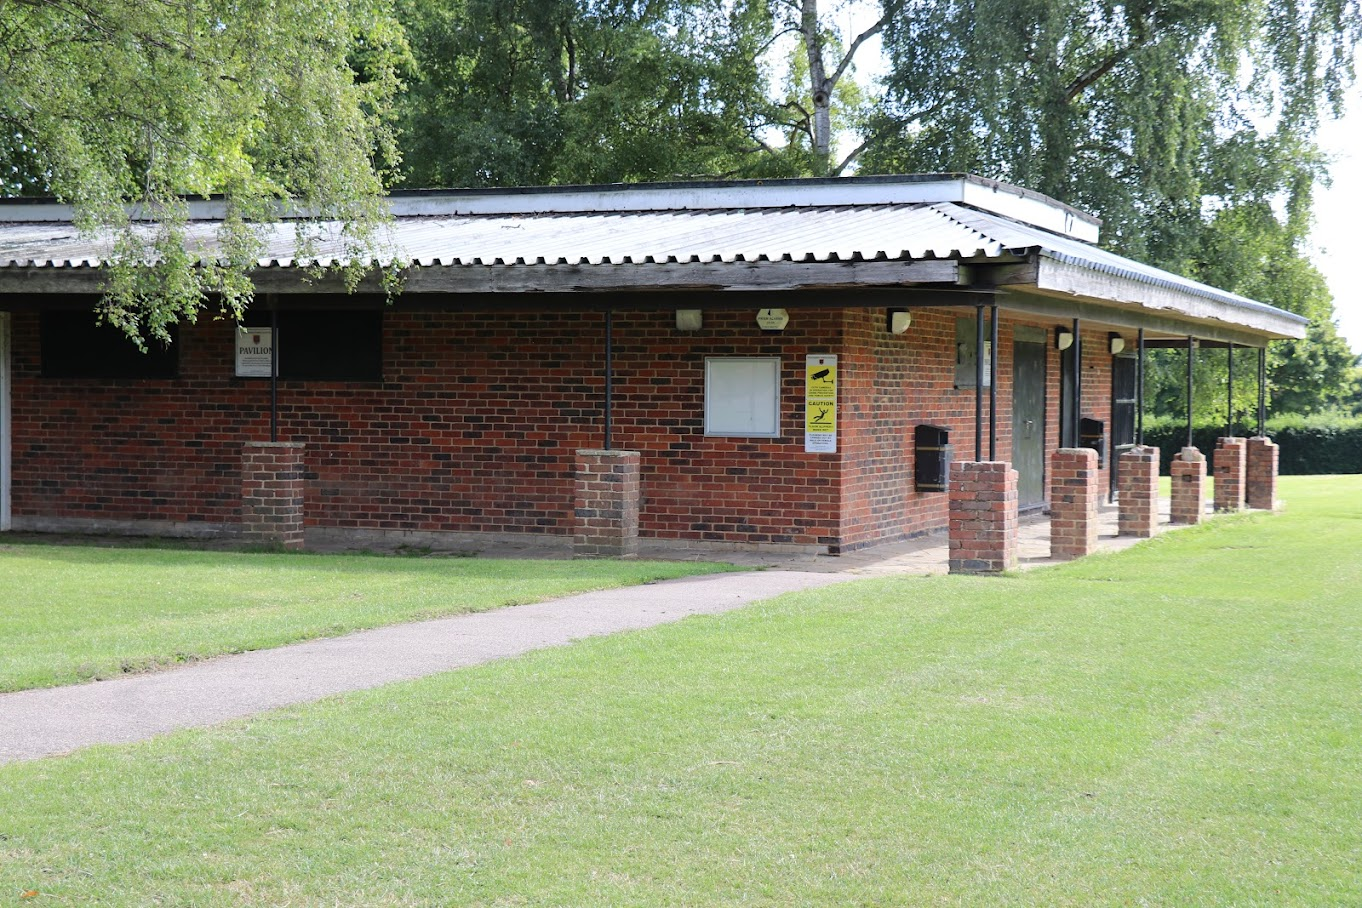 The Pavilion Tenterden Recreation Ground